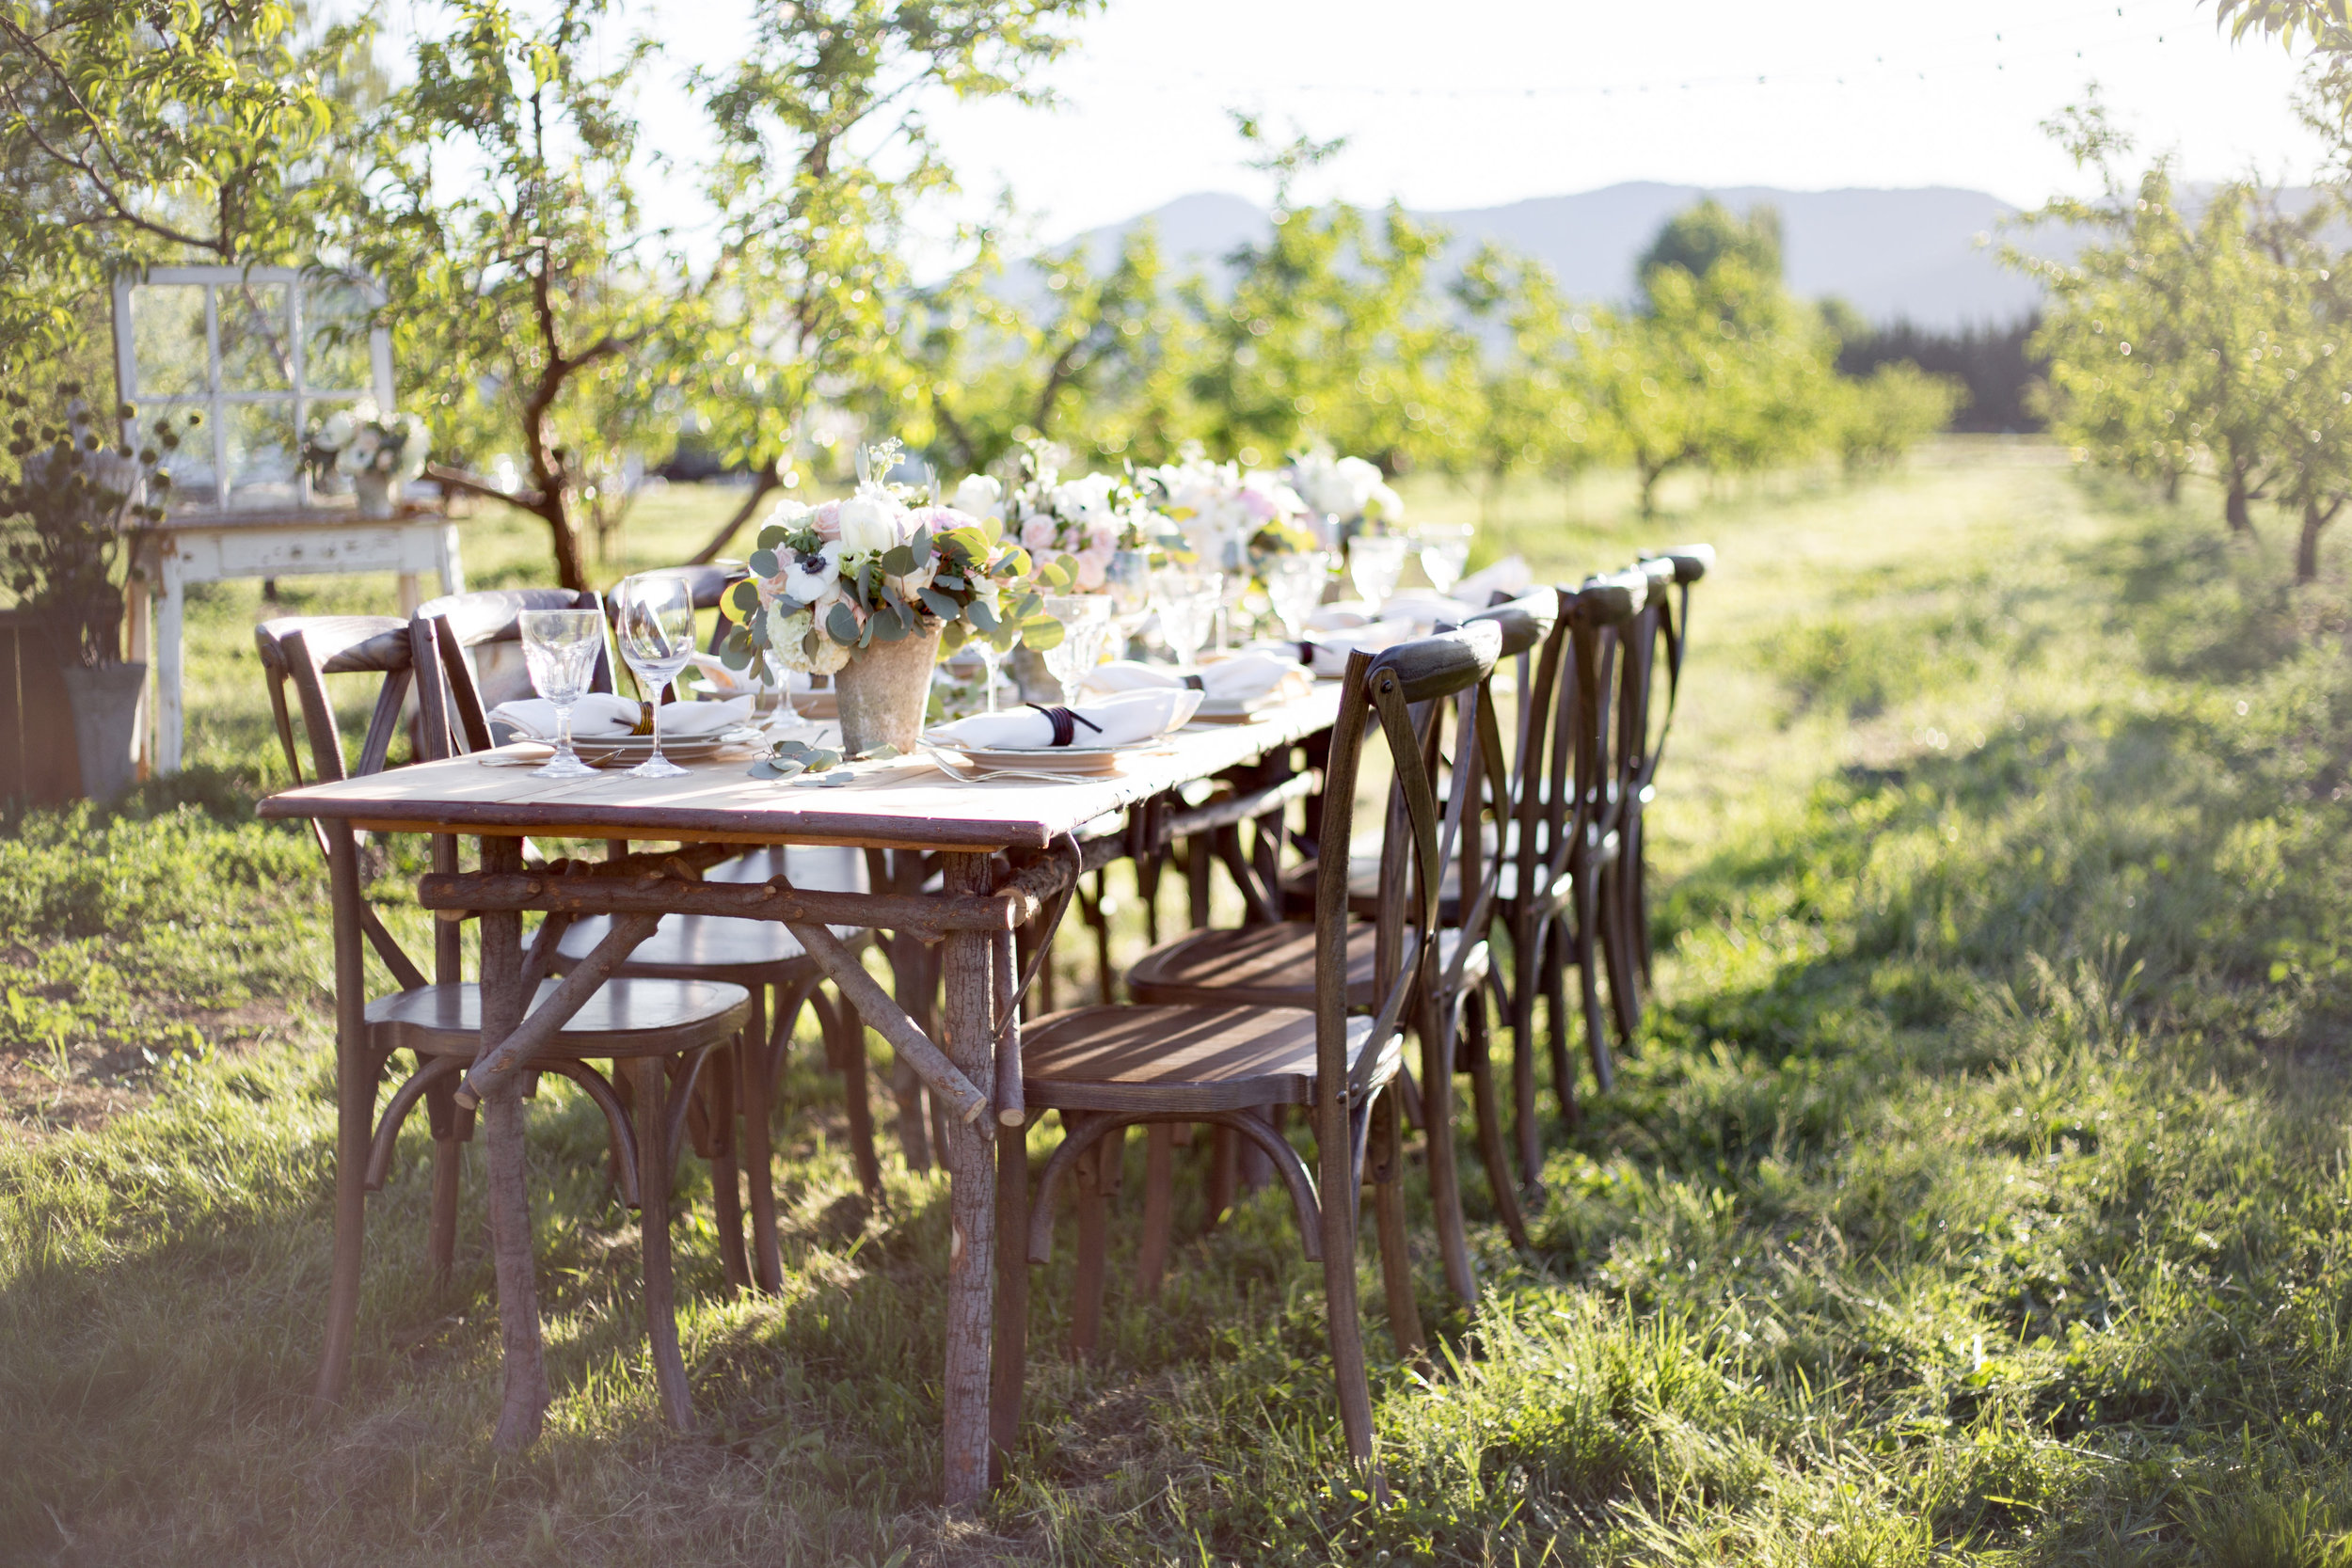 Evening in the Orchard at Whites Country Farm